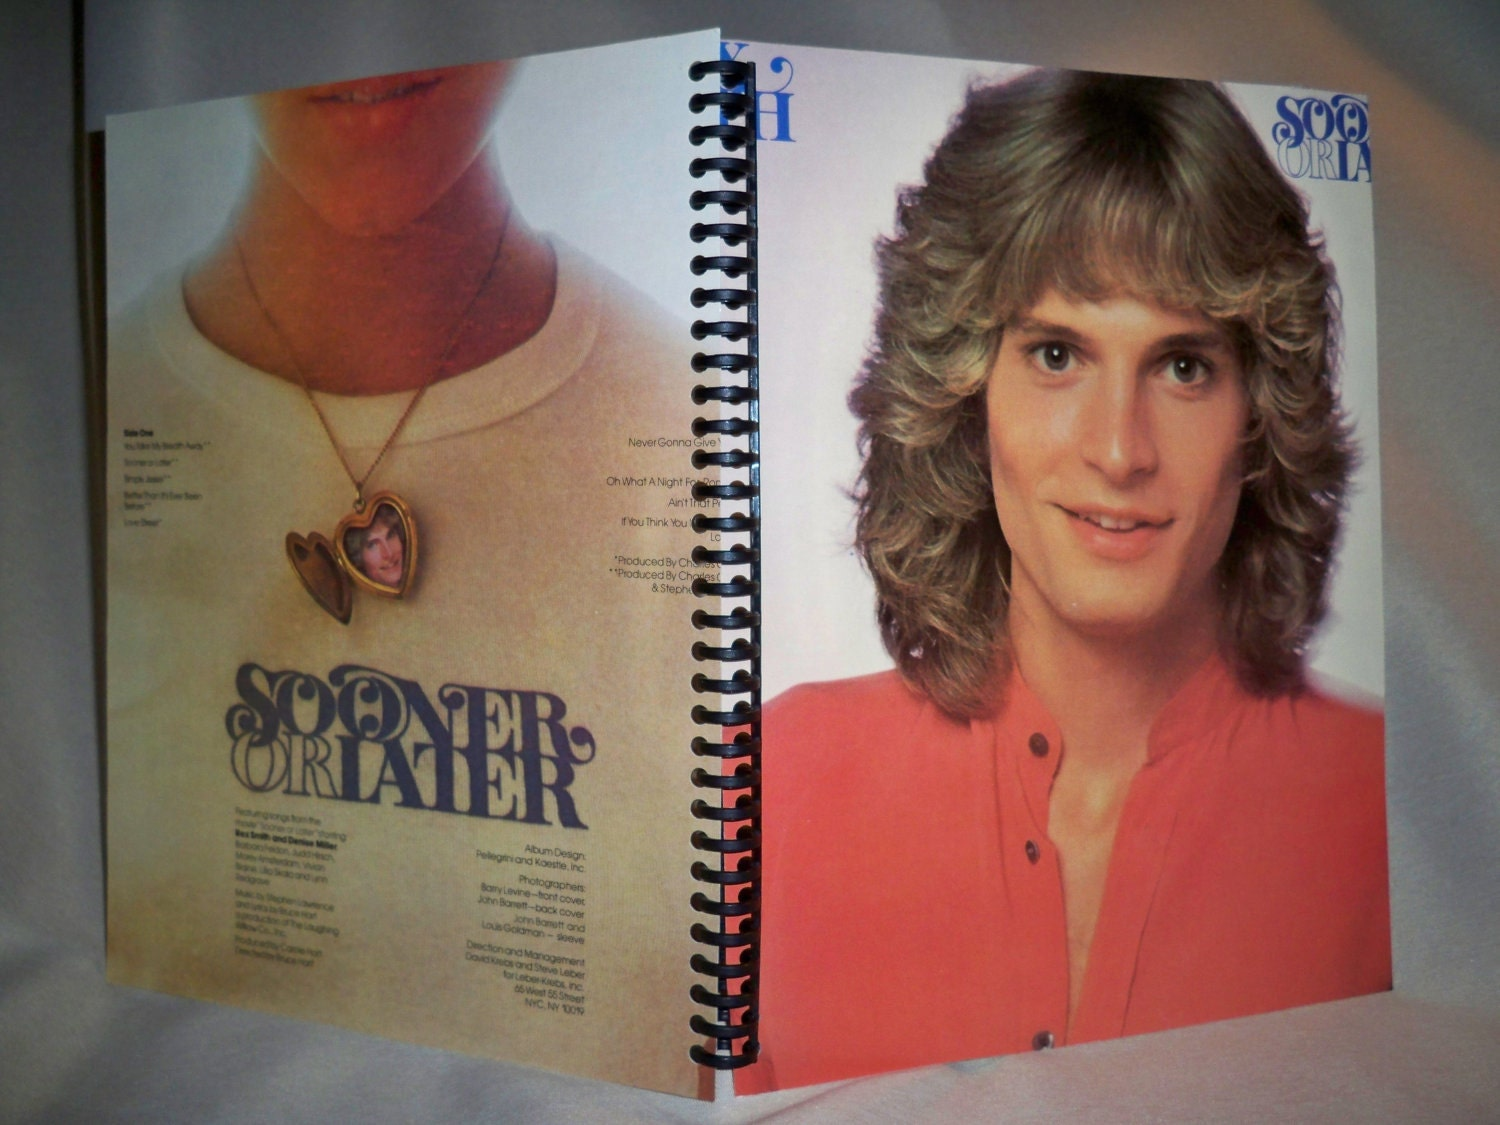 rex smith 2015rex smith discogs, rex smith wiki, rex smith, rex smith forever, rex smith singer, rex smith let make a memory, rex smith wikipedia, rex smith and rachel sweet, rex smith songs, rex smith sooner or later, rex smith simply jessie, rex smith movie, rex smith you take my breath away lyrics, rex smith street hawk, rex smith net worth, rex smith imdb, rex smith times union, rex smith 2015, rex smith everlasting love, rex smith facebook